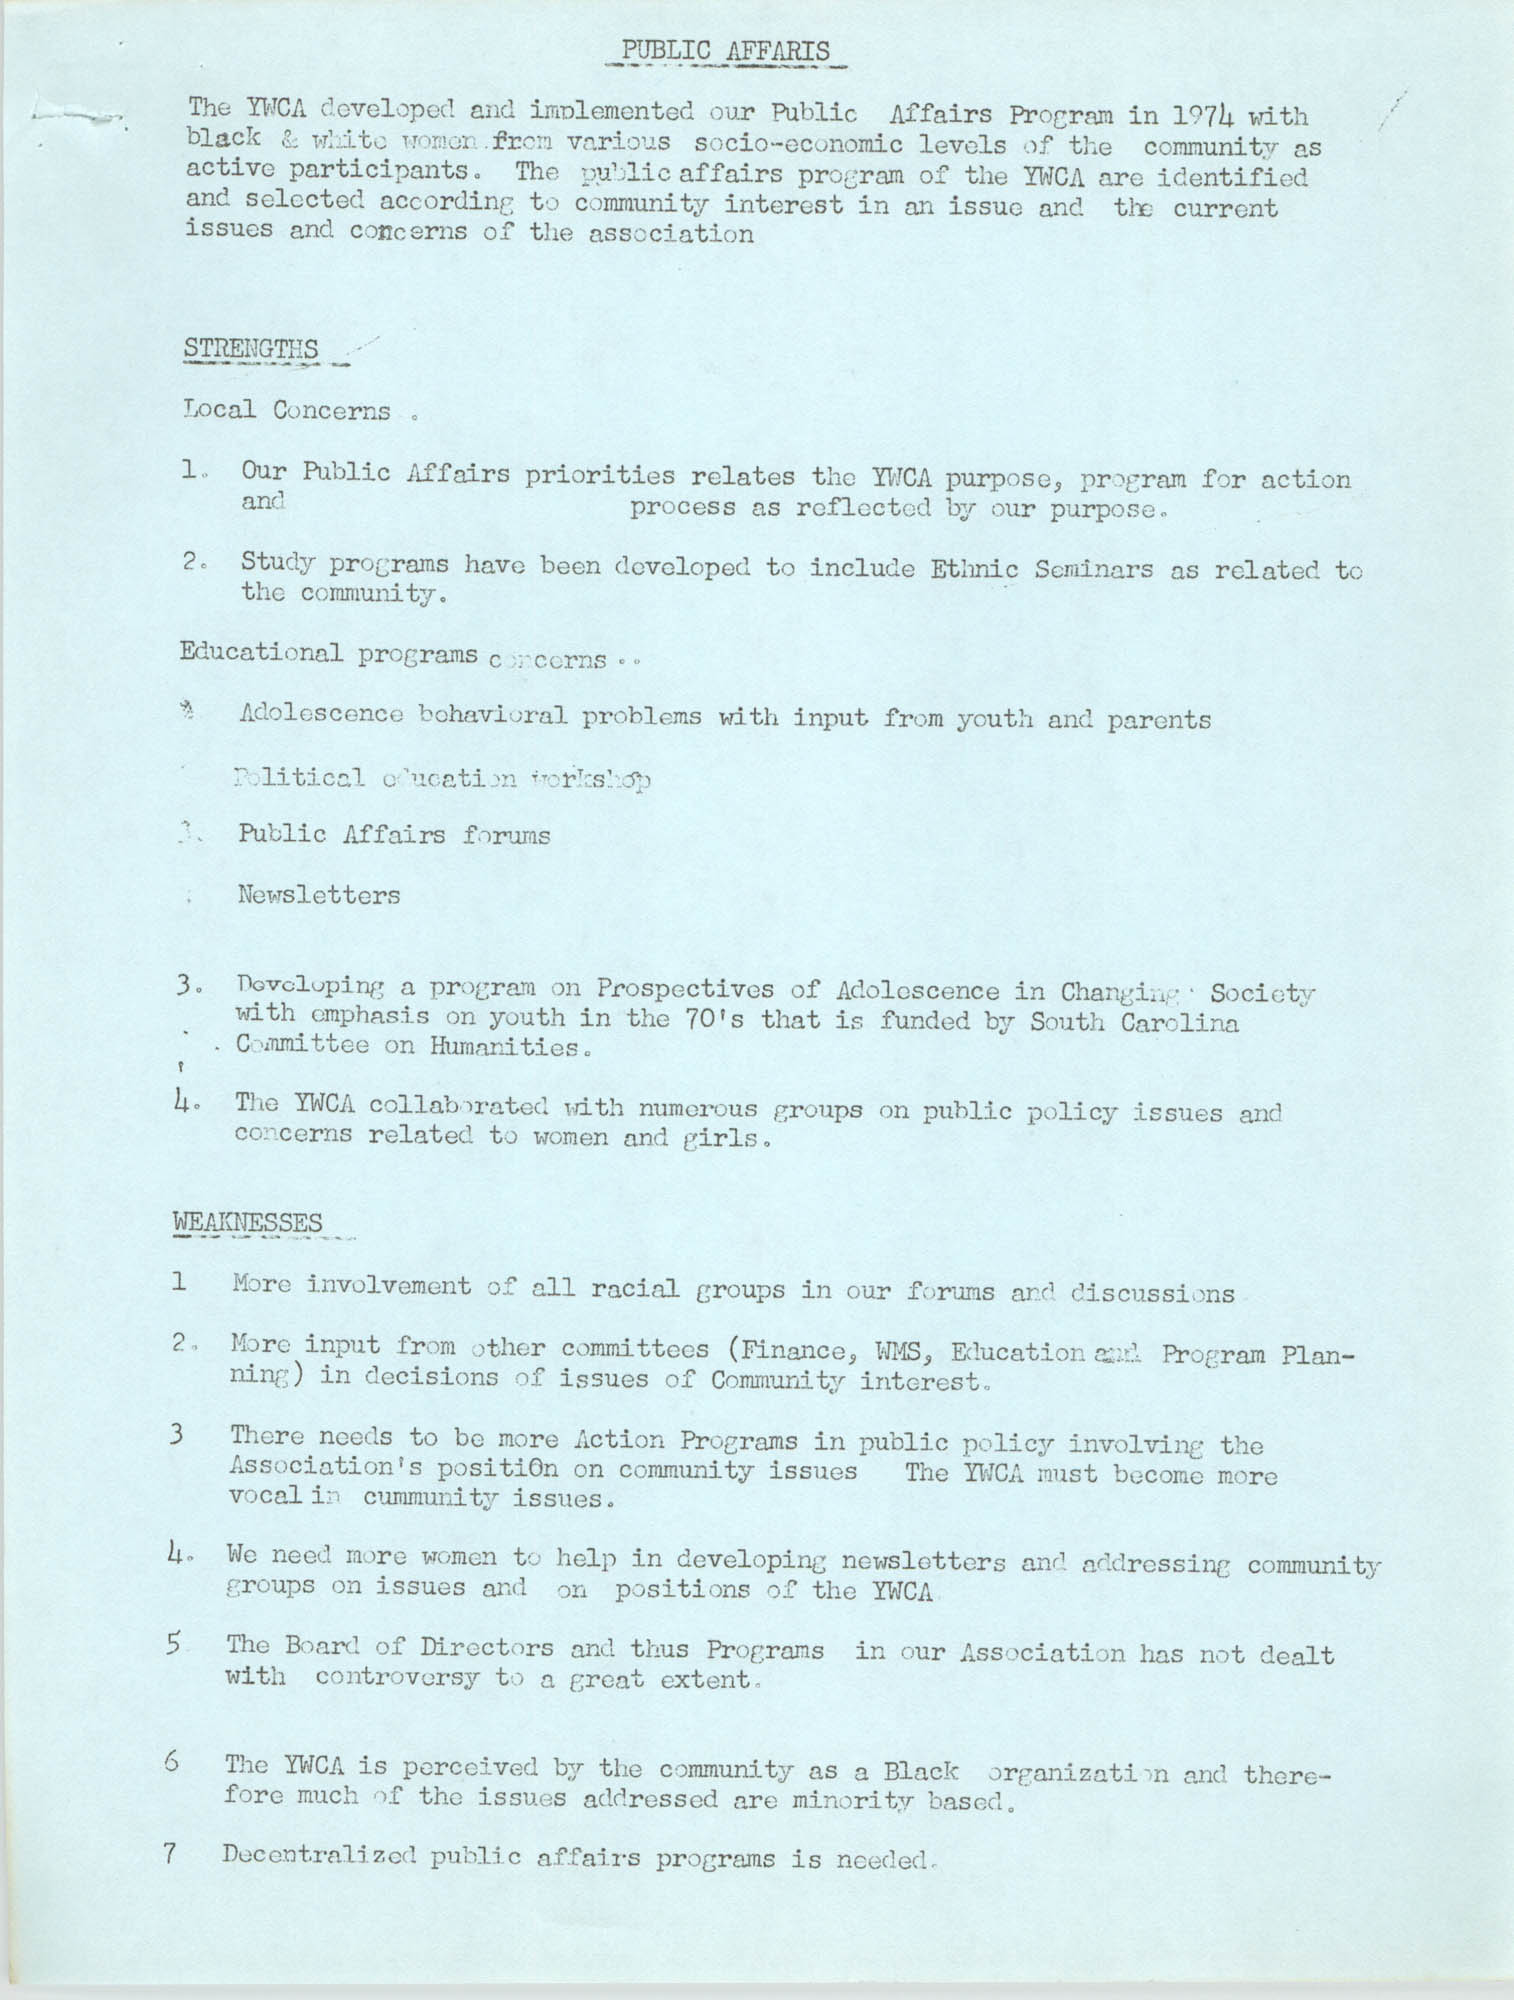 Program for the Y.W.C.A. of Greater Charleston, 1974, Page 5